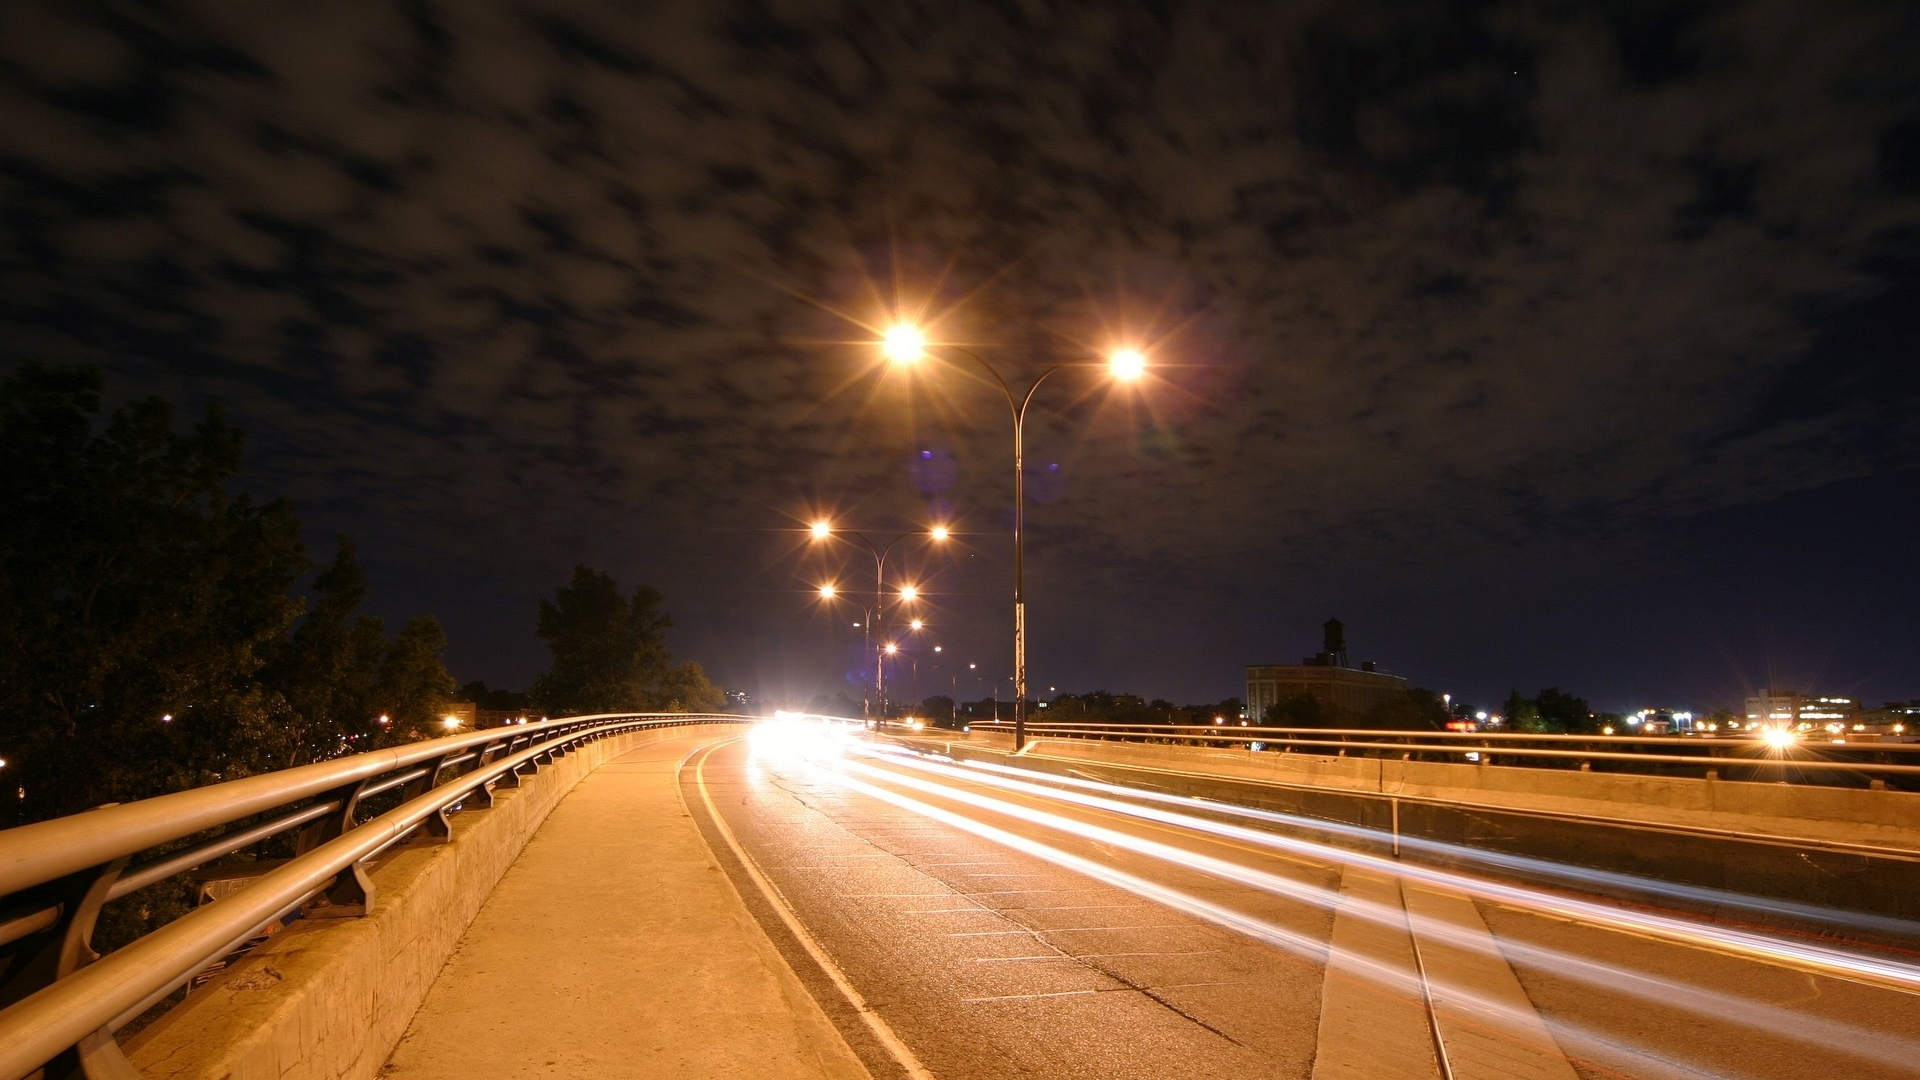 Best Looking Cars Wallpapers Headlight Trails On Highway At Night Abstract